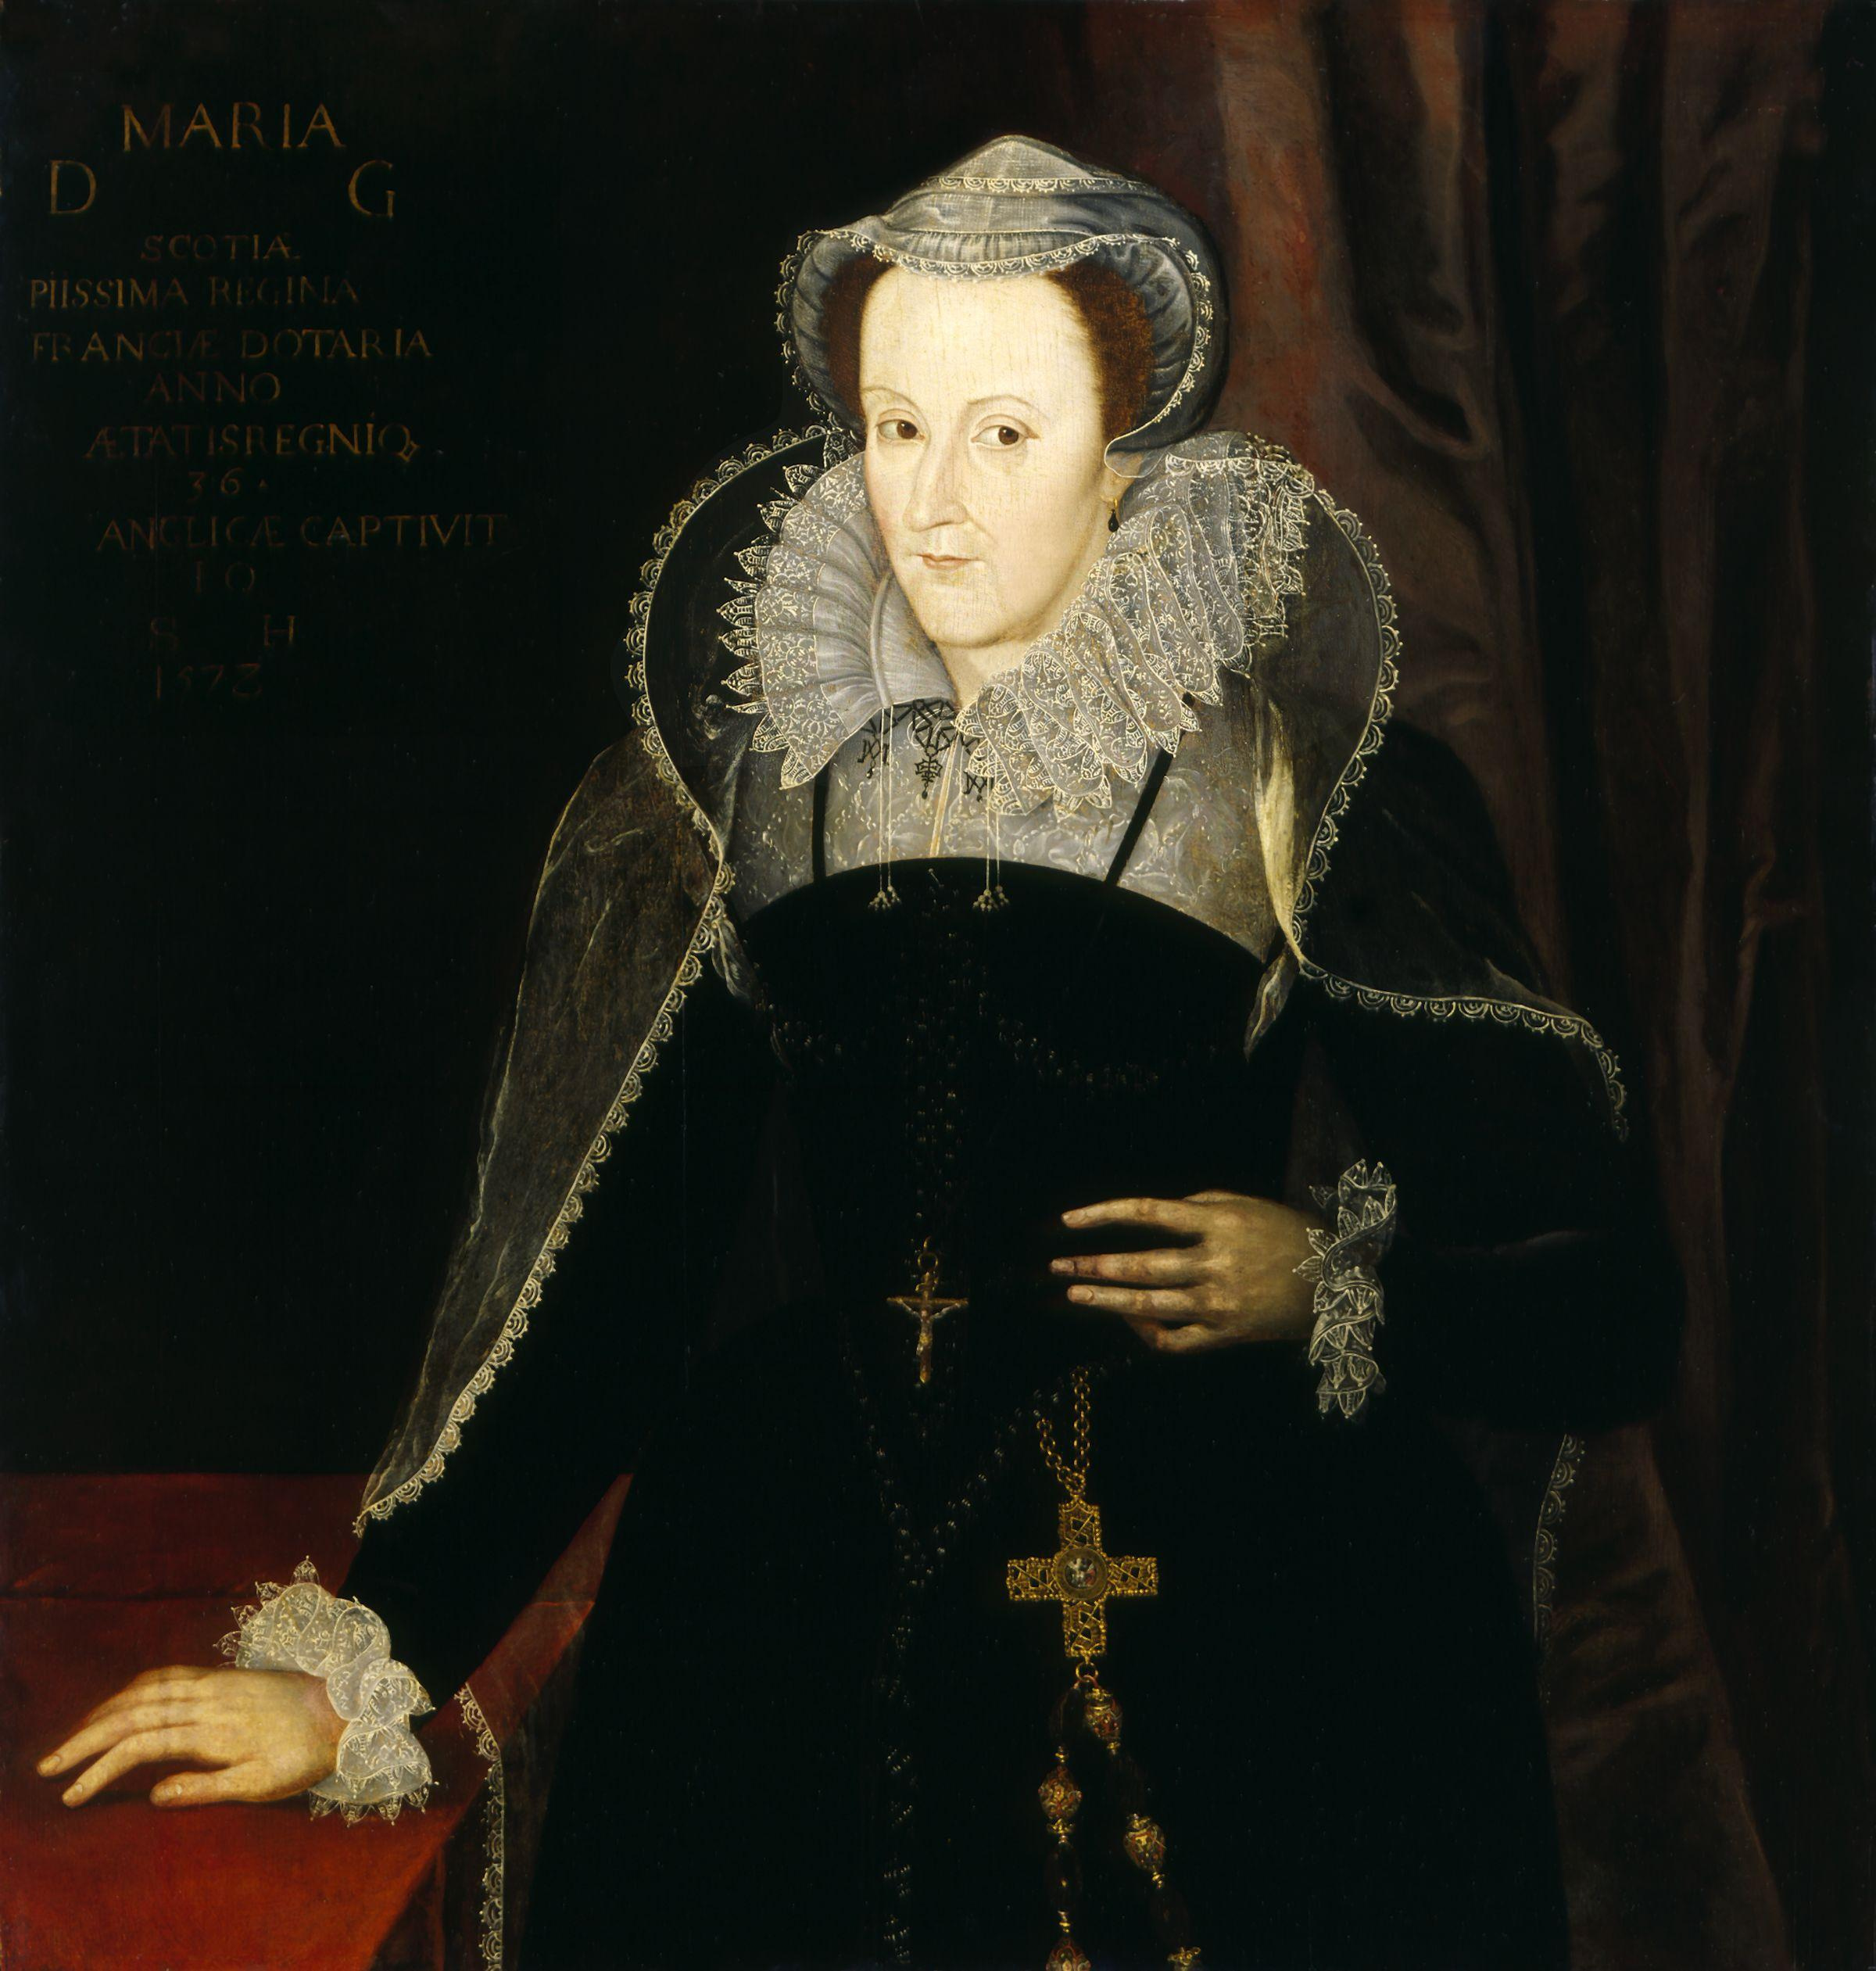 https://upload.wikimedia.org/wikipedia/commons/8/8b/Mary,_Queen_of_Scots_after_Nicholas_Hilliard.jpg